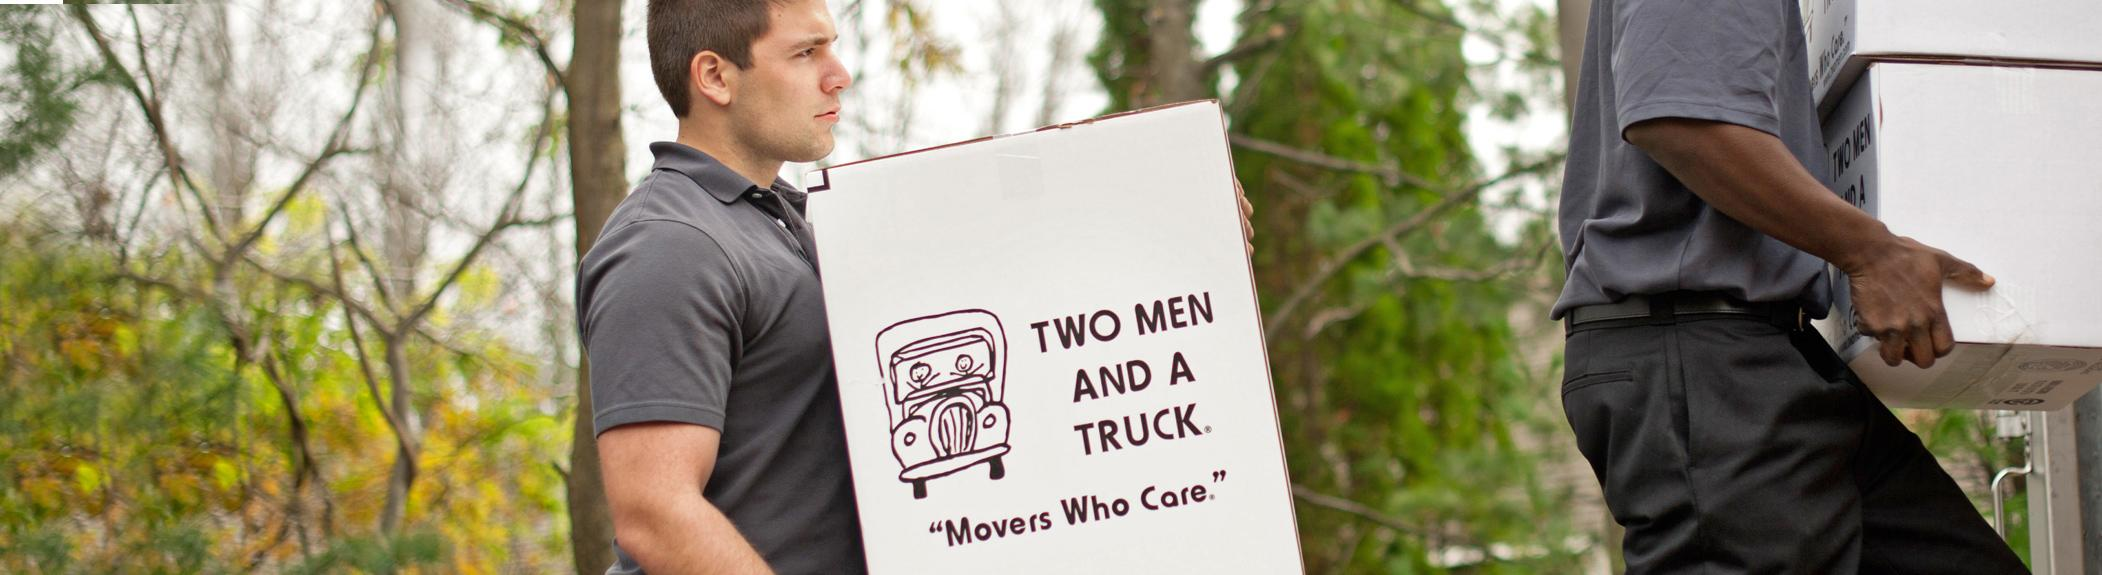 local home moving company services by two men and a truck